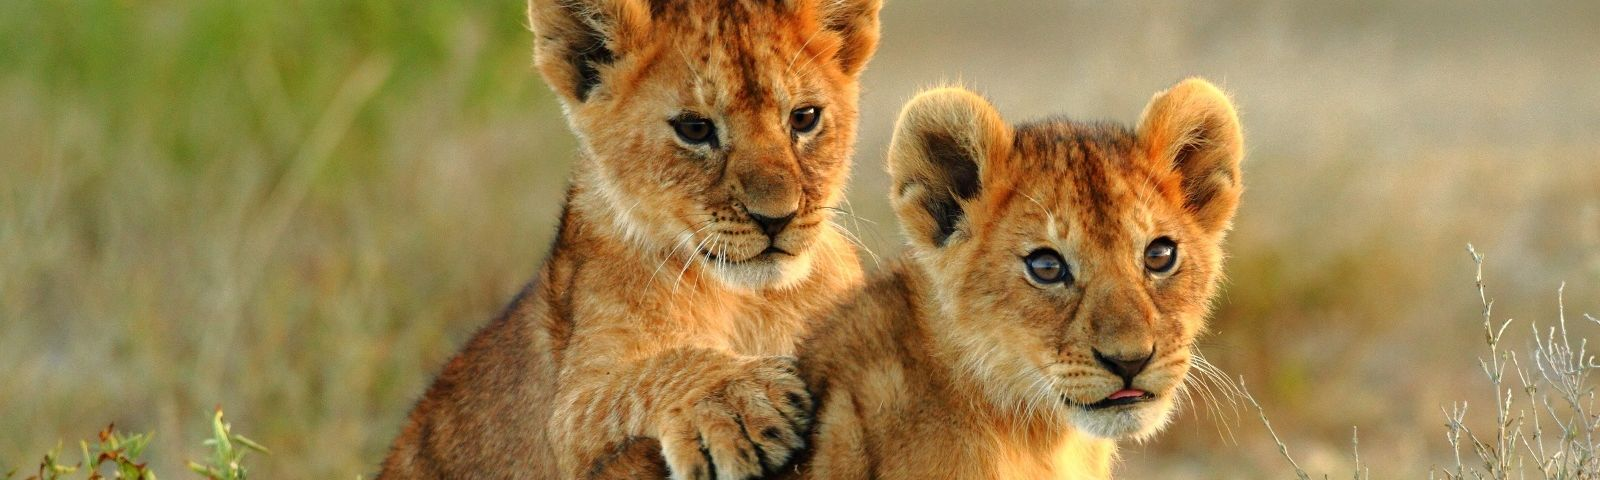 Two lion cubs play in Arusha National Park in Tanzania, East Africa